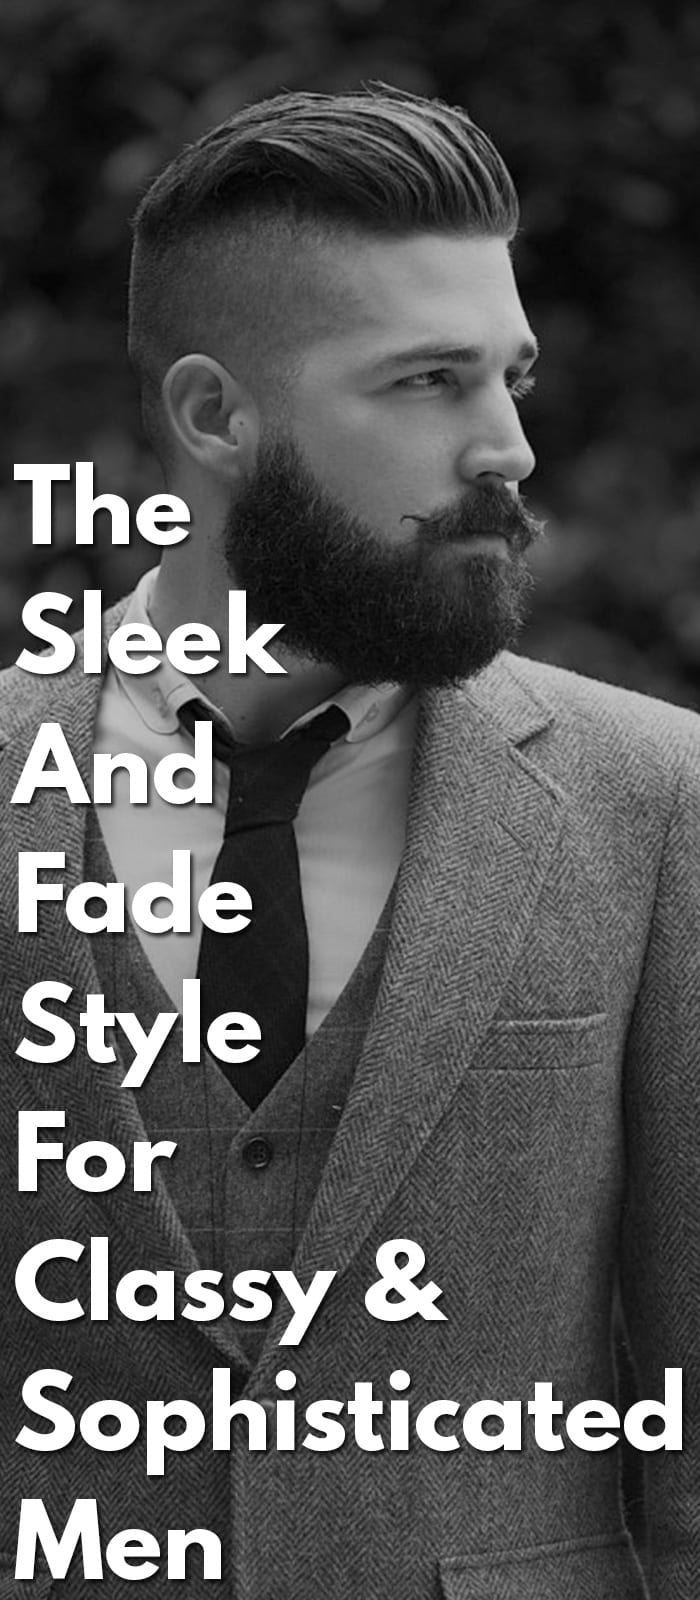 The-Sleek-And-Fade-Style-For-Classy-&-Sophisticated-Men.